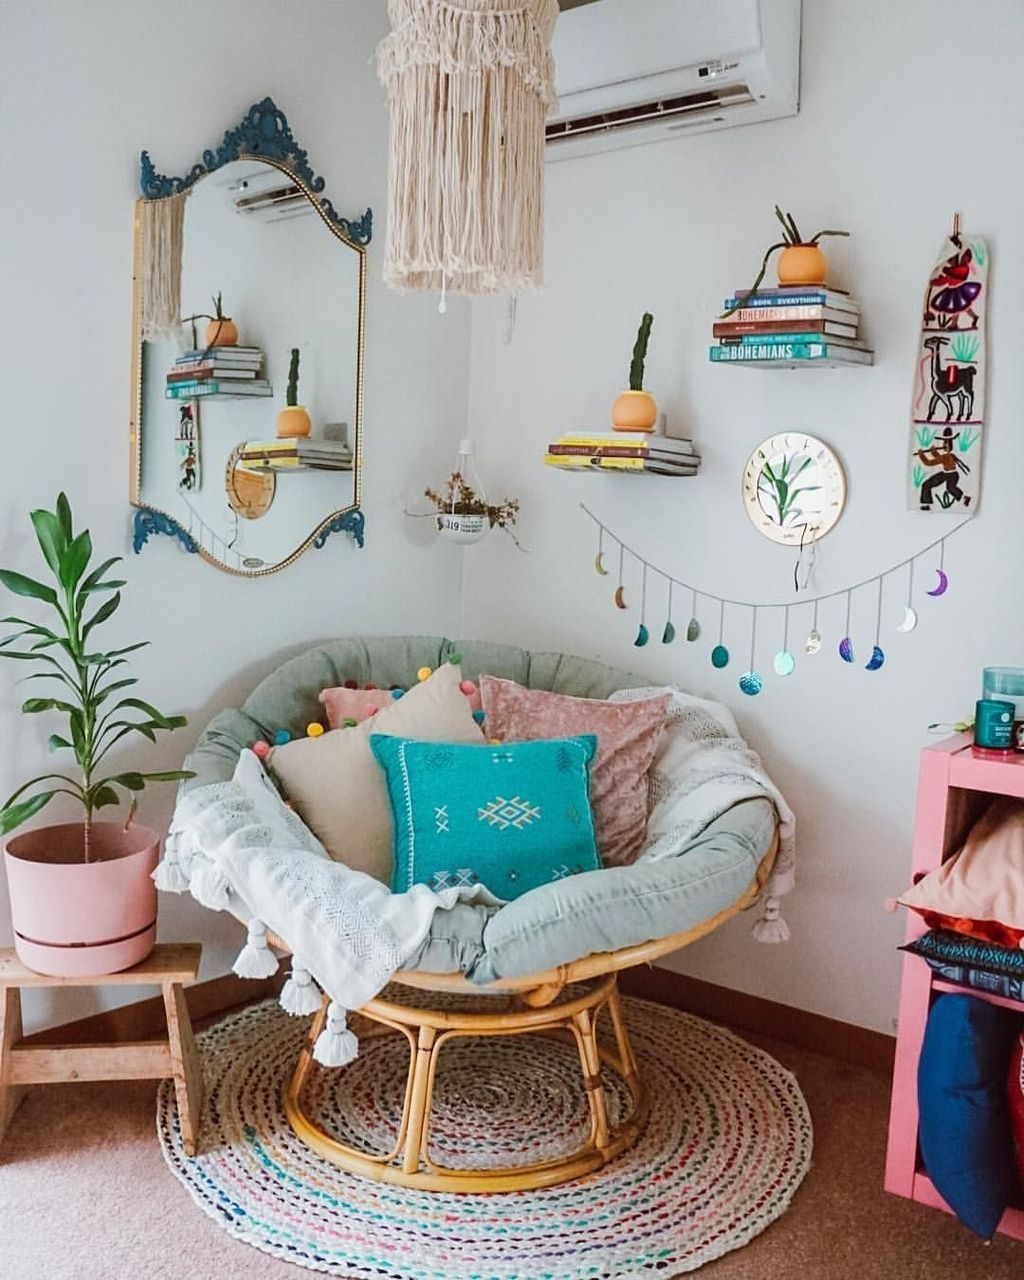 20+ Inspiring Reading Room Decor Ideas To Make You Cozy images